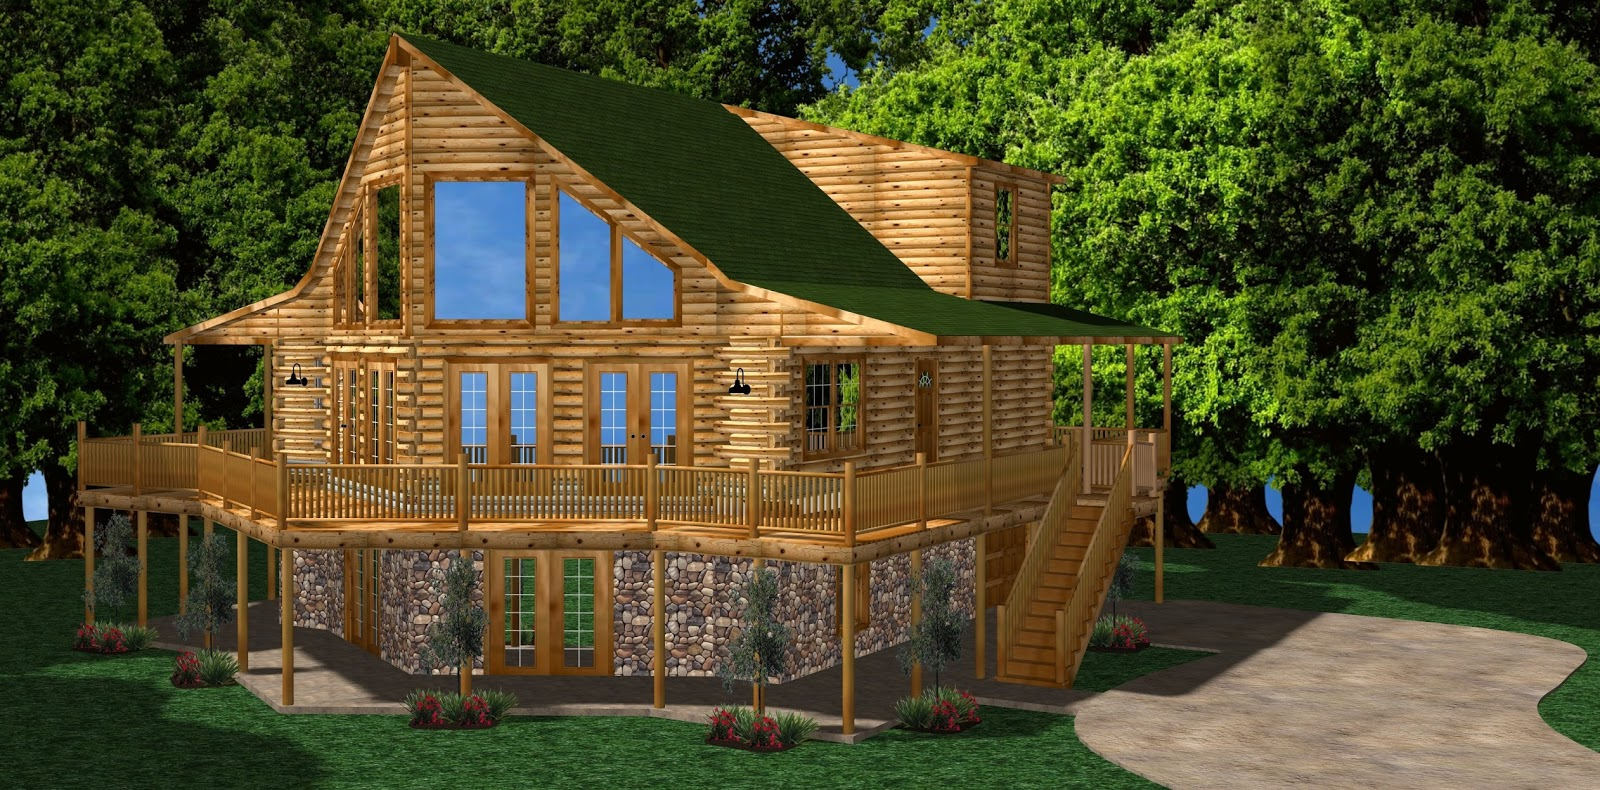 Tar river log homes tar river log homes tar river log for Two story log cabin kits